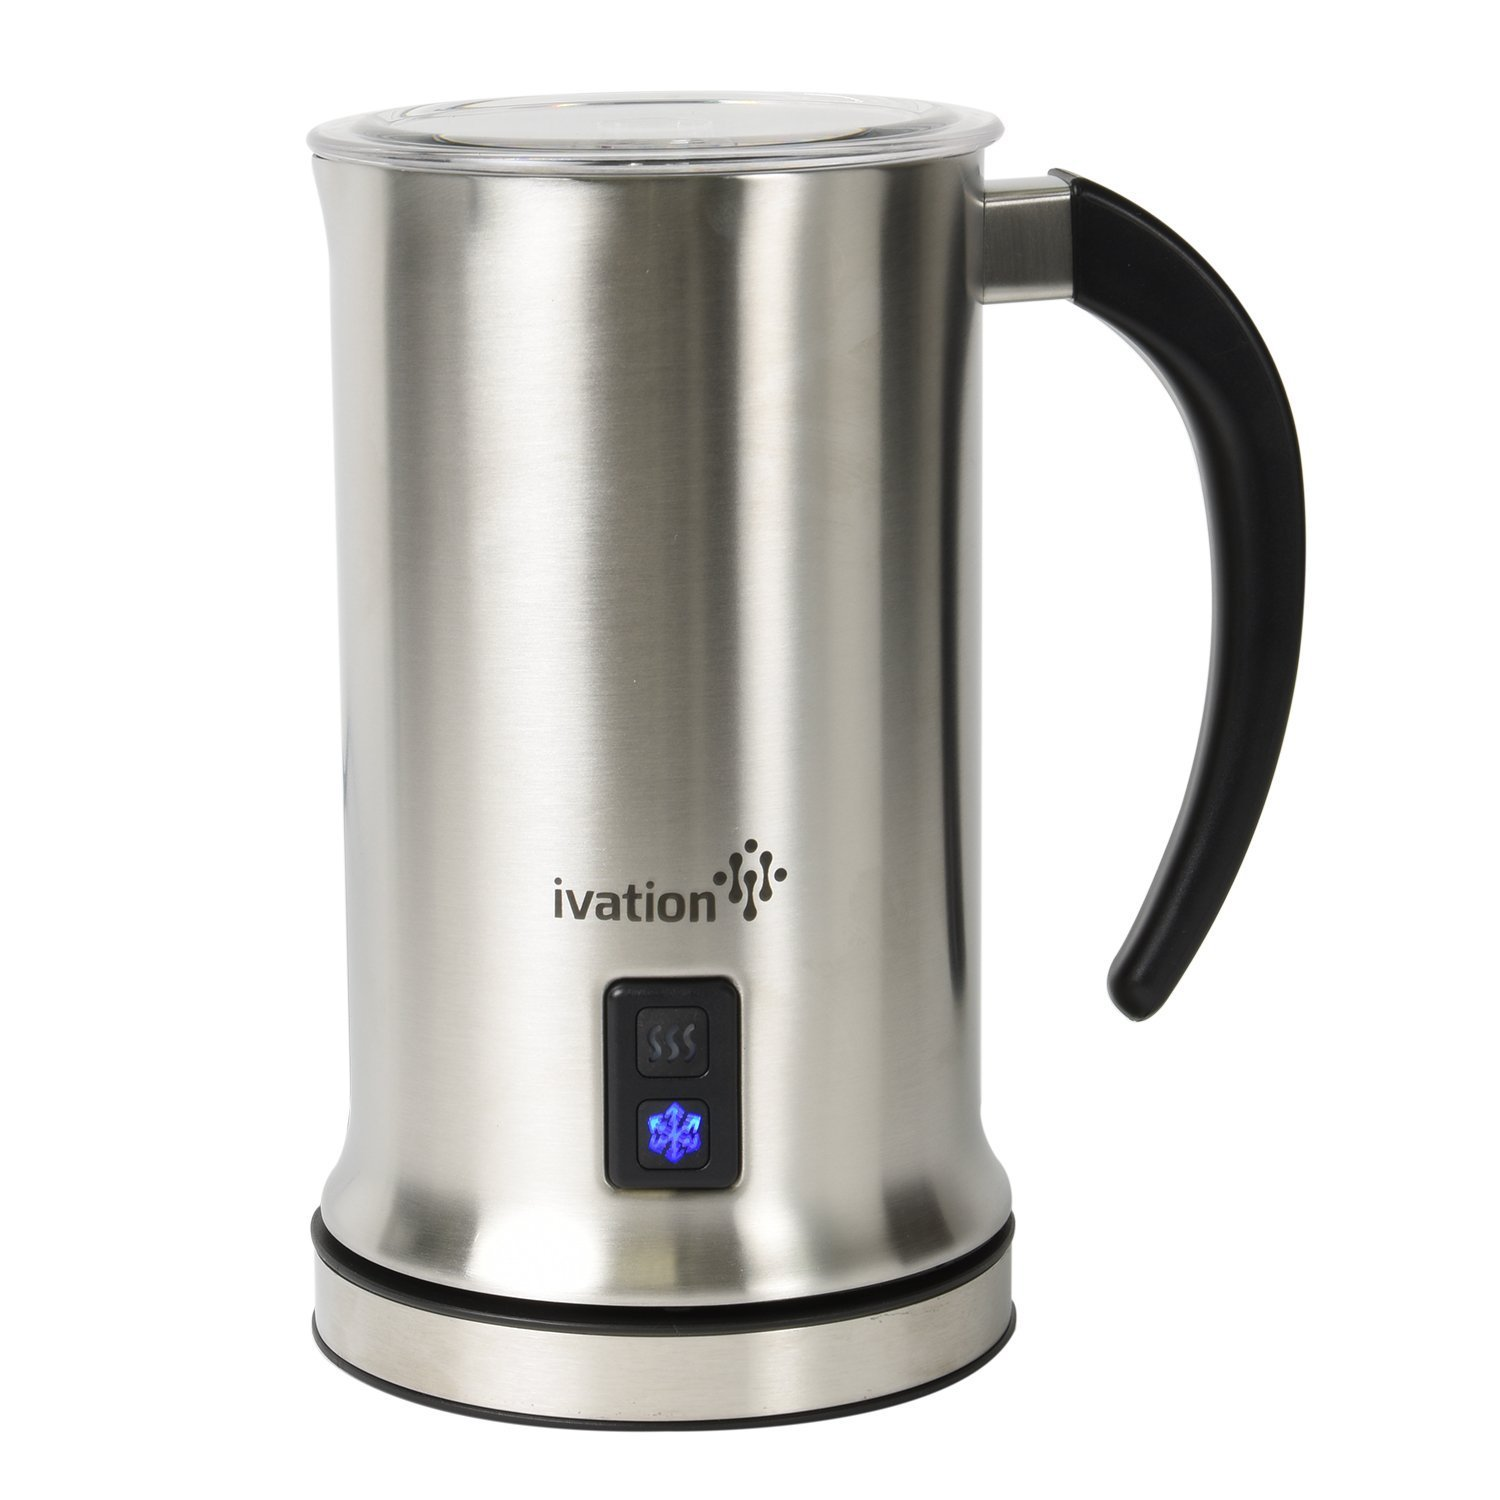 Ivation Cordless Automatic Electric Milk Frother & Warmer, Steamer, Mixer, Cappuccino Maker